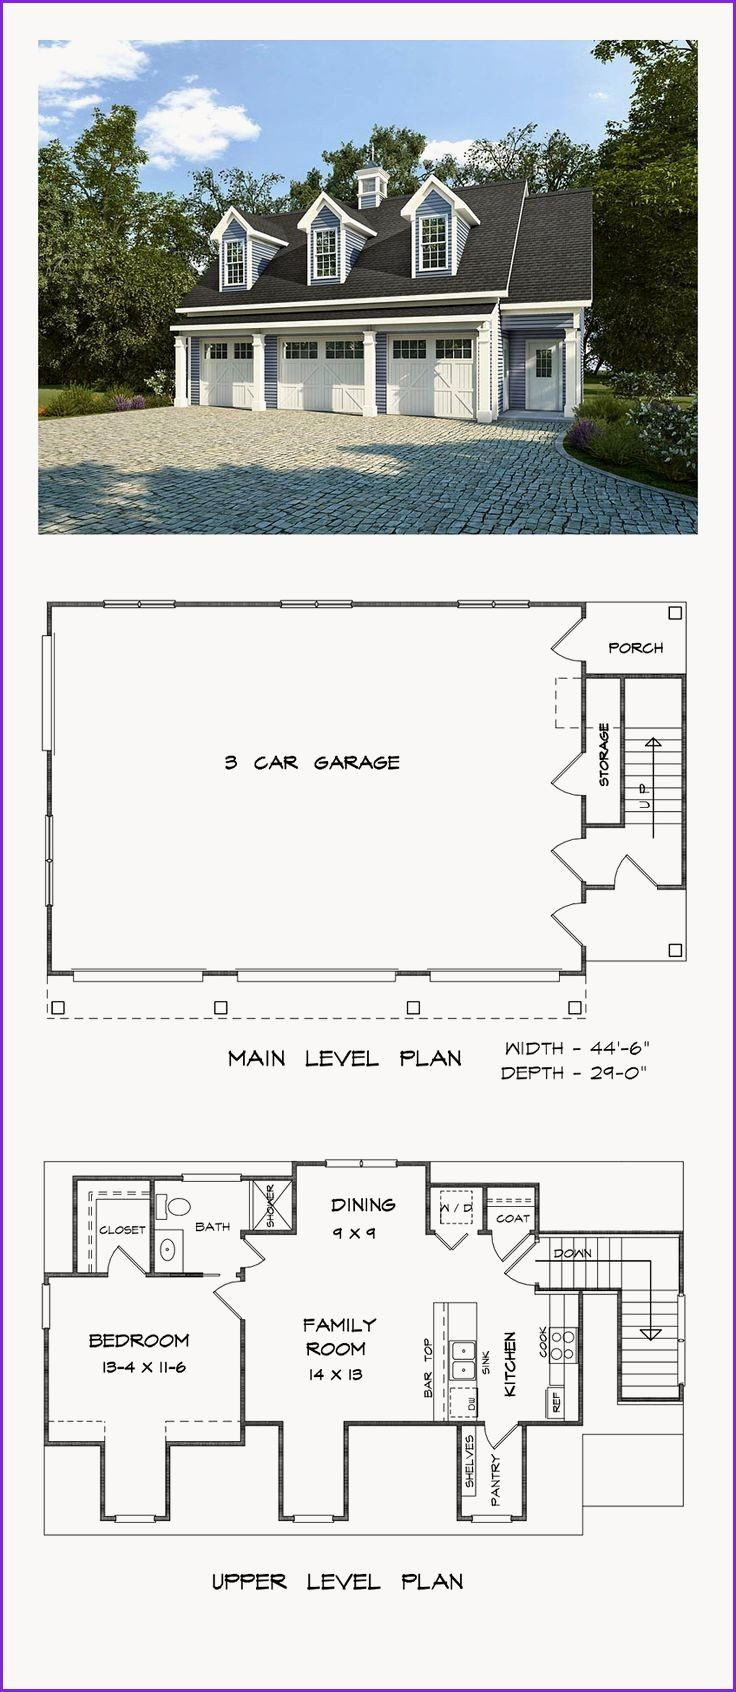 Awesome 4 Car Garage House Plans With Images Carriage House Plans Garage Apartment Plan